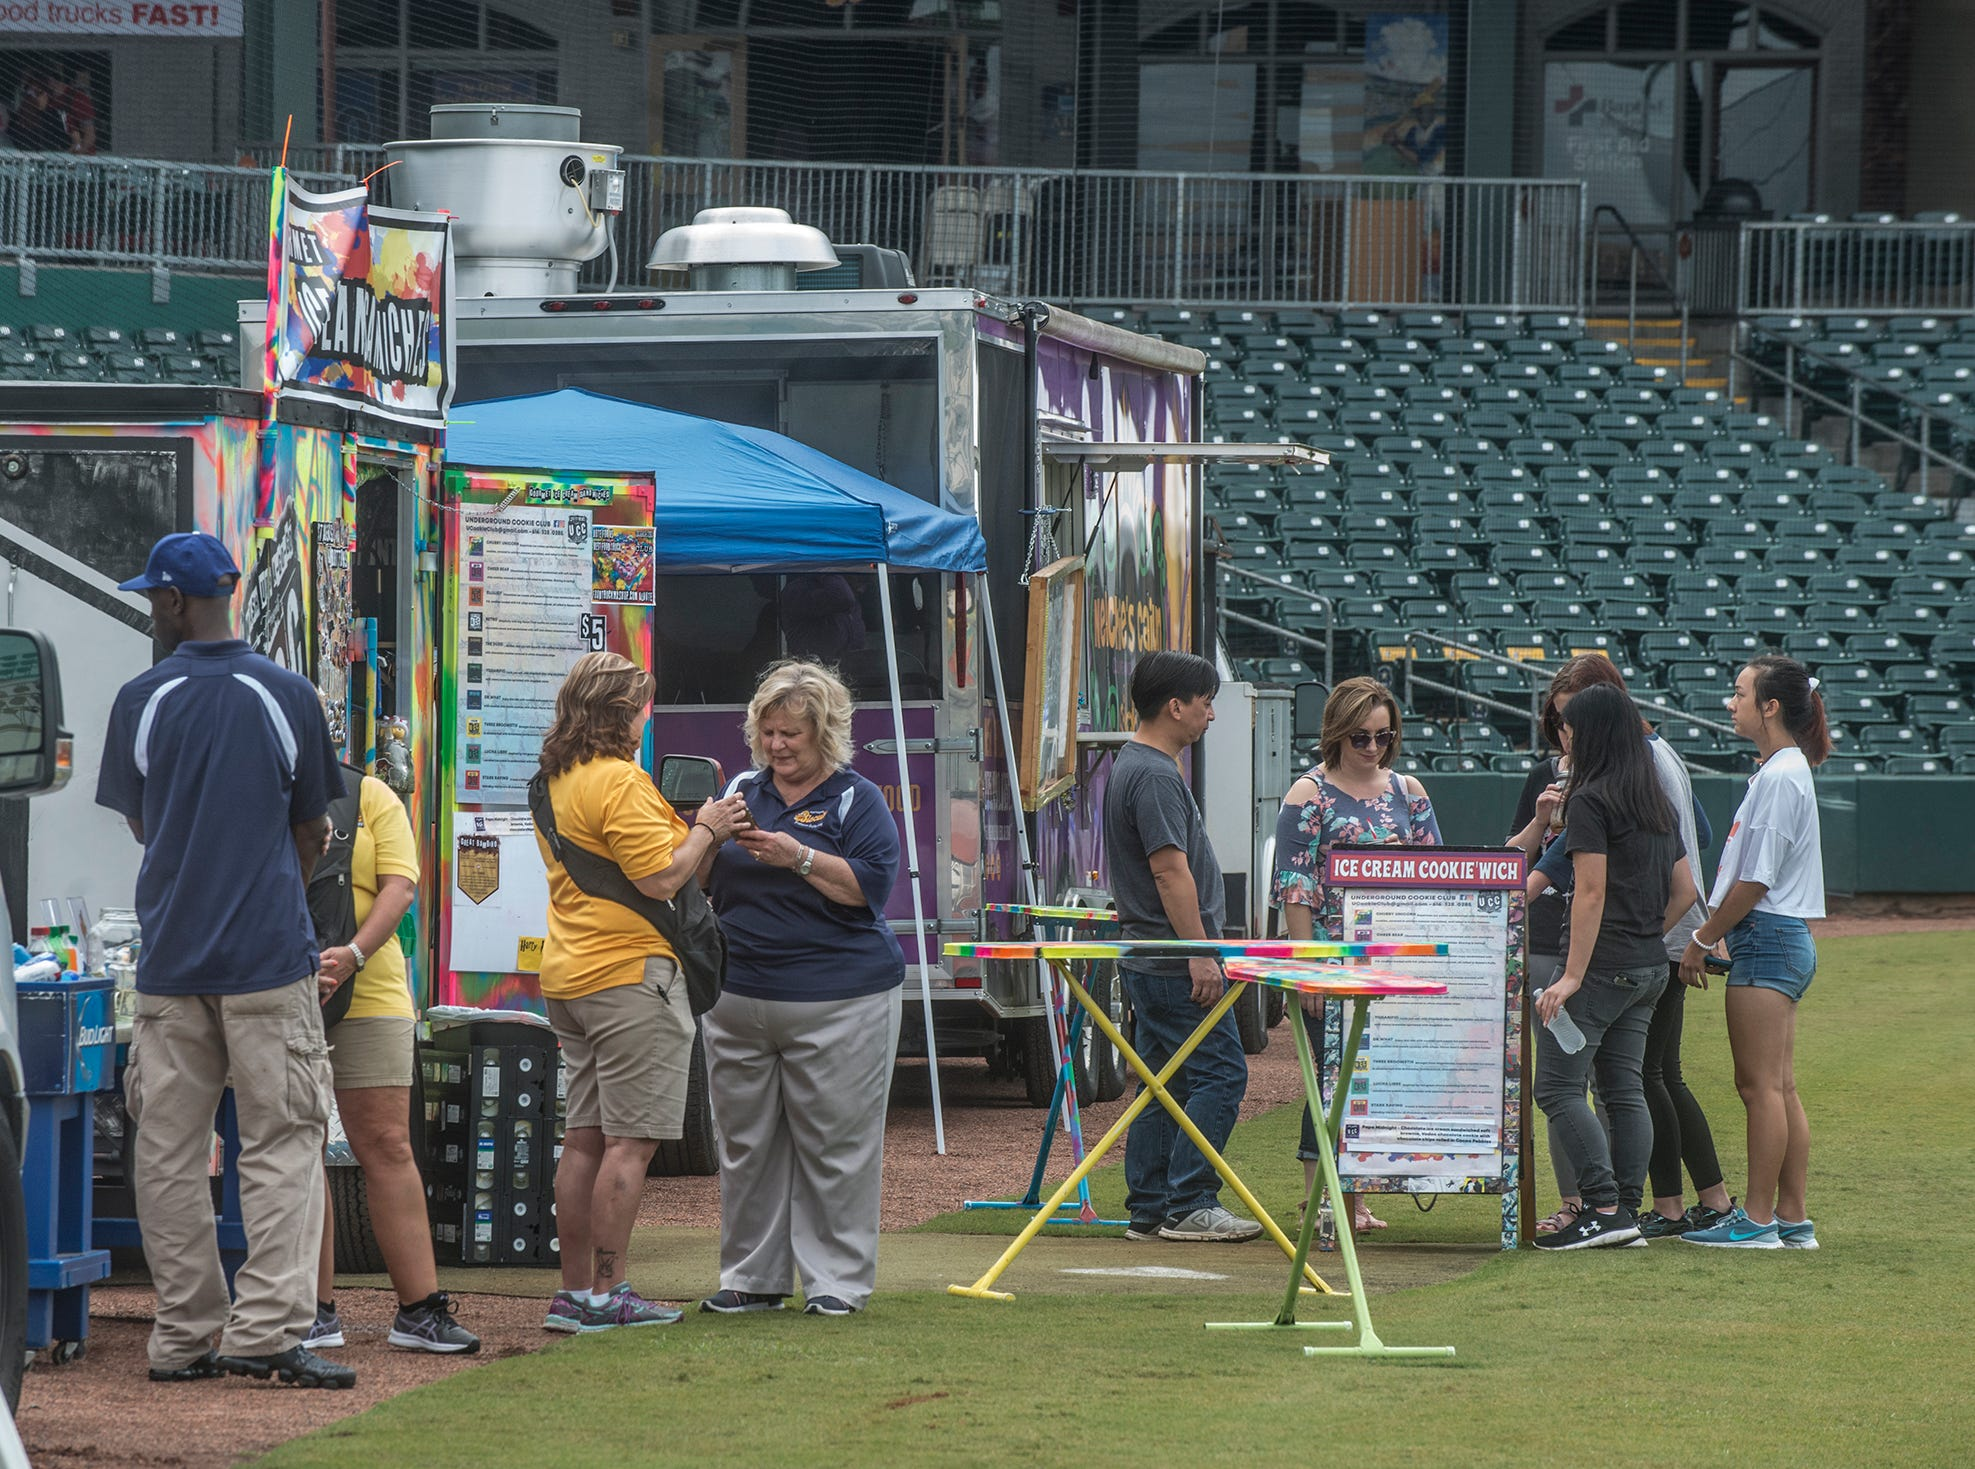 Food Truck Mash-Up returned to Riverwalk Stadium on Saturday, Oct. 20, 2018, bringing a variety of food trucks, music and games for guests to enjoy.